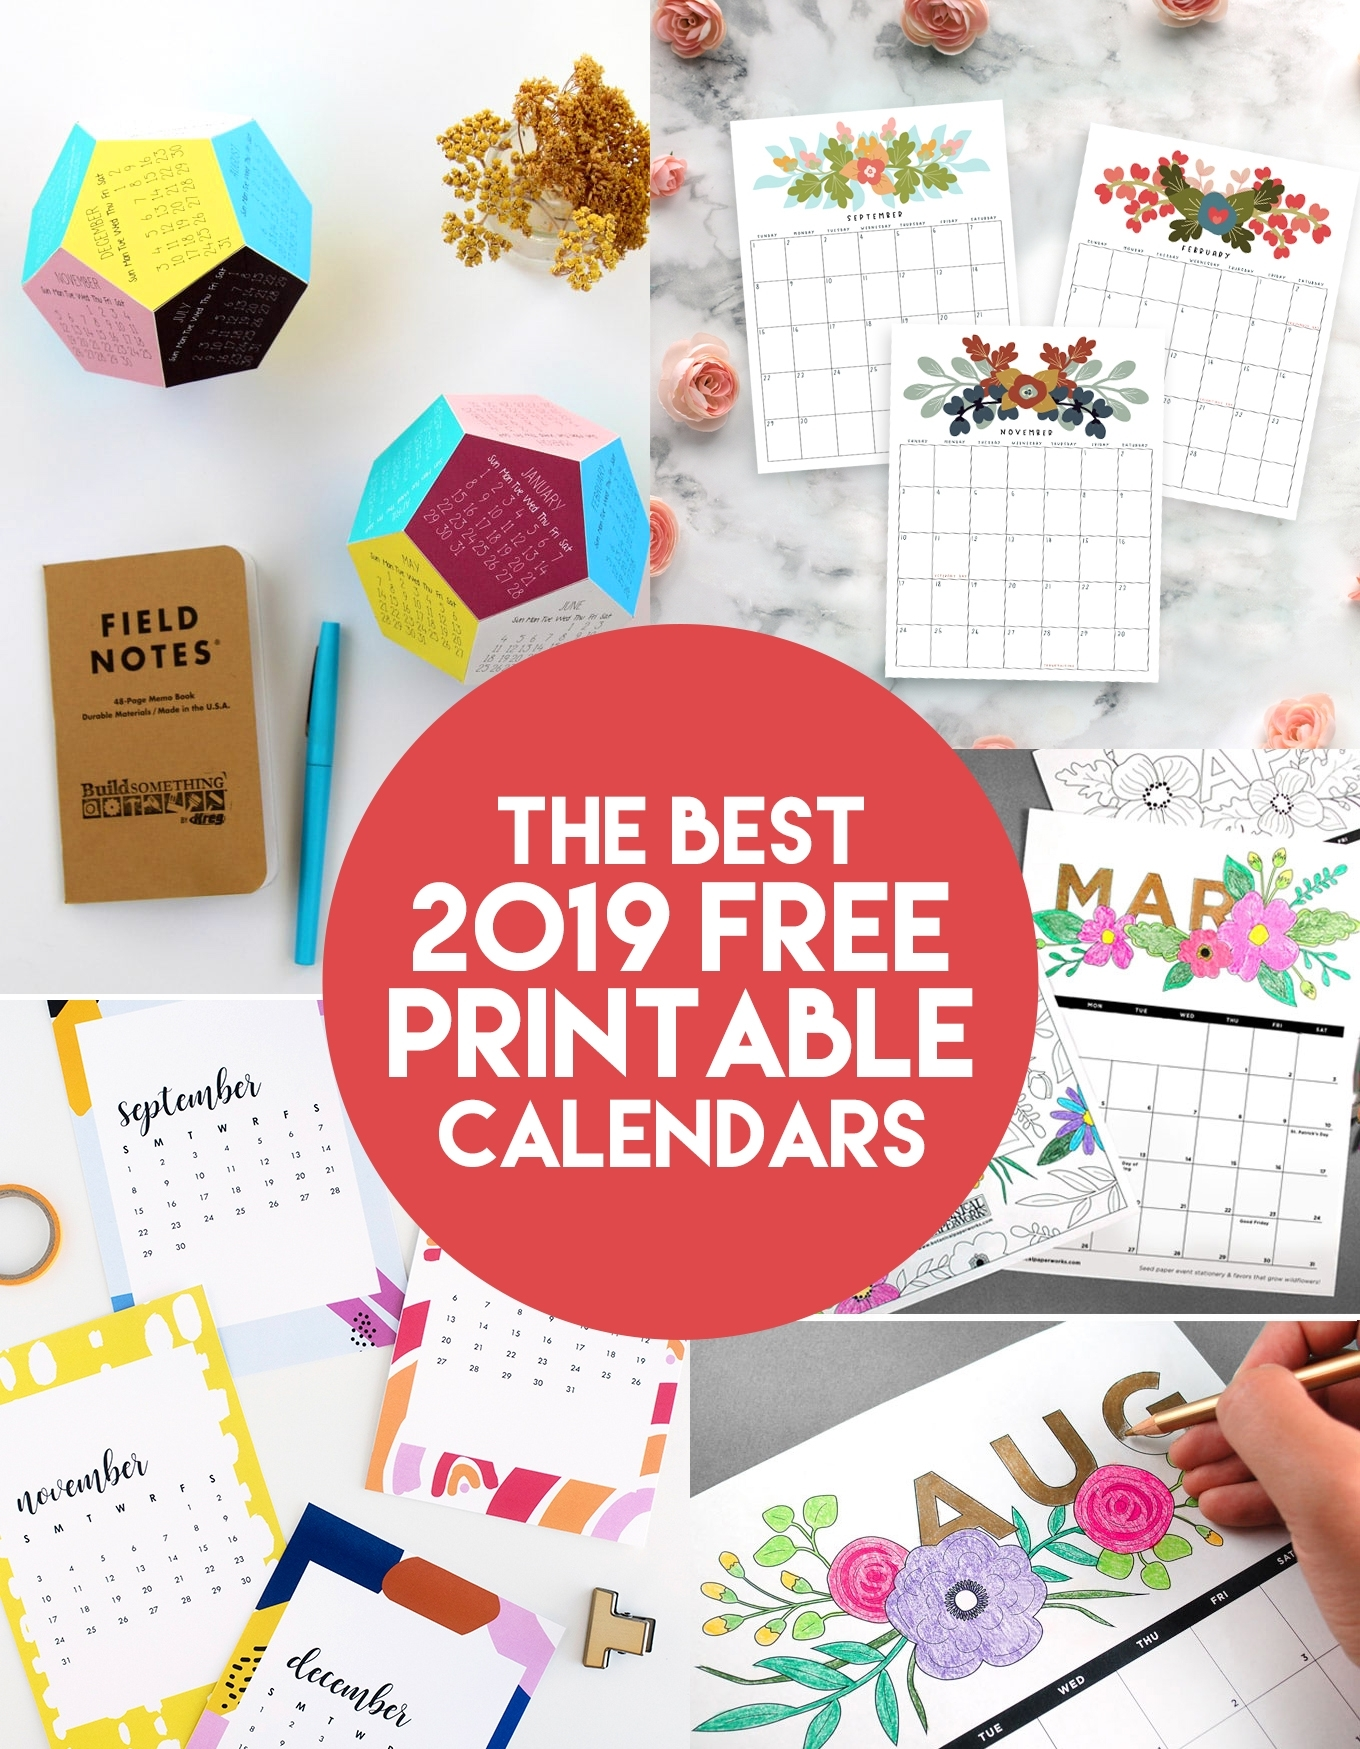 The Best 2019 Free Printable Calendars - The Craft Patch